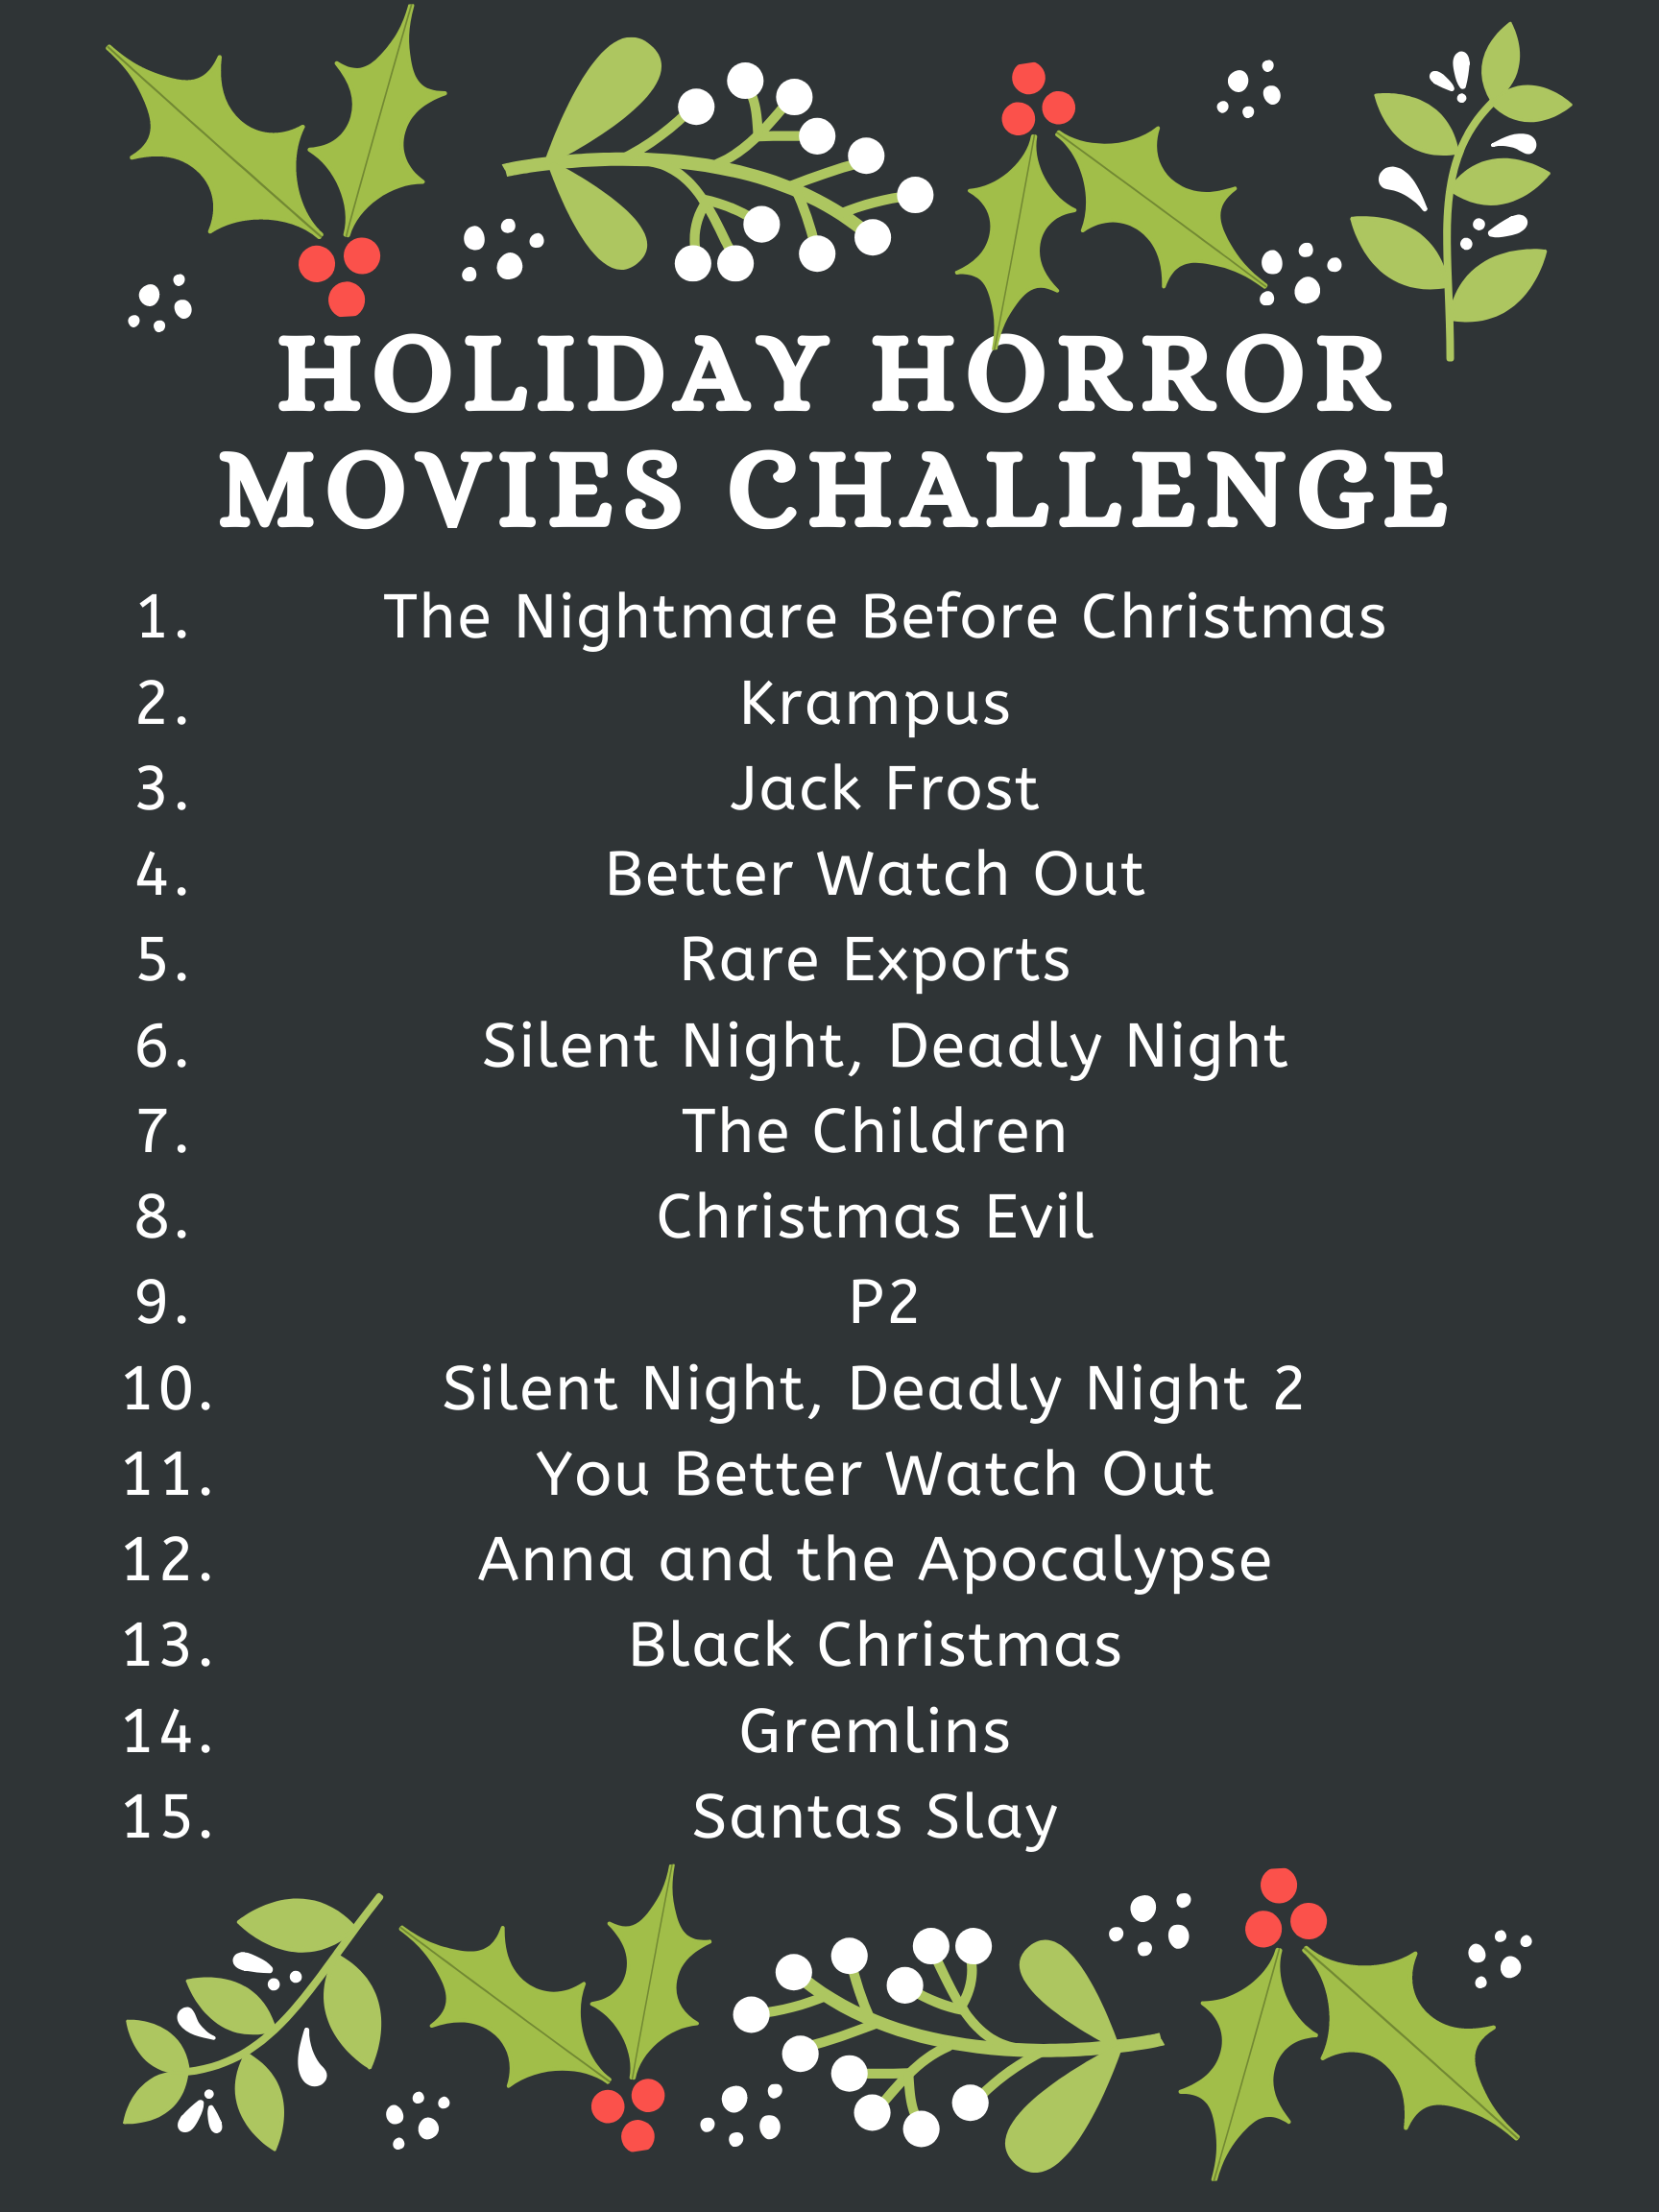 holiday horror movies, holiday horror, scary christmas movies, Christmas horror movies, Black Christmas remake